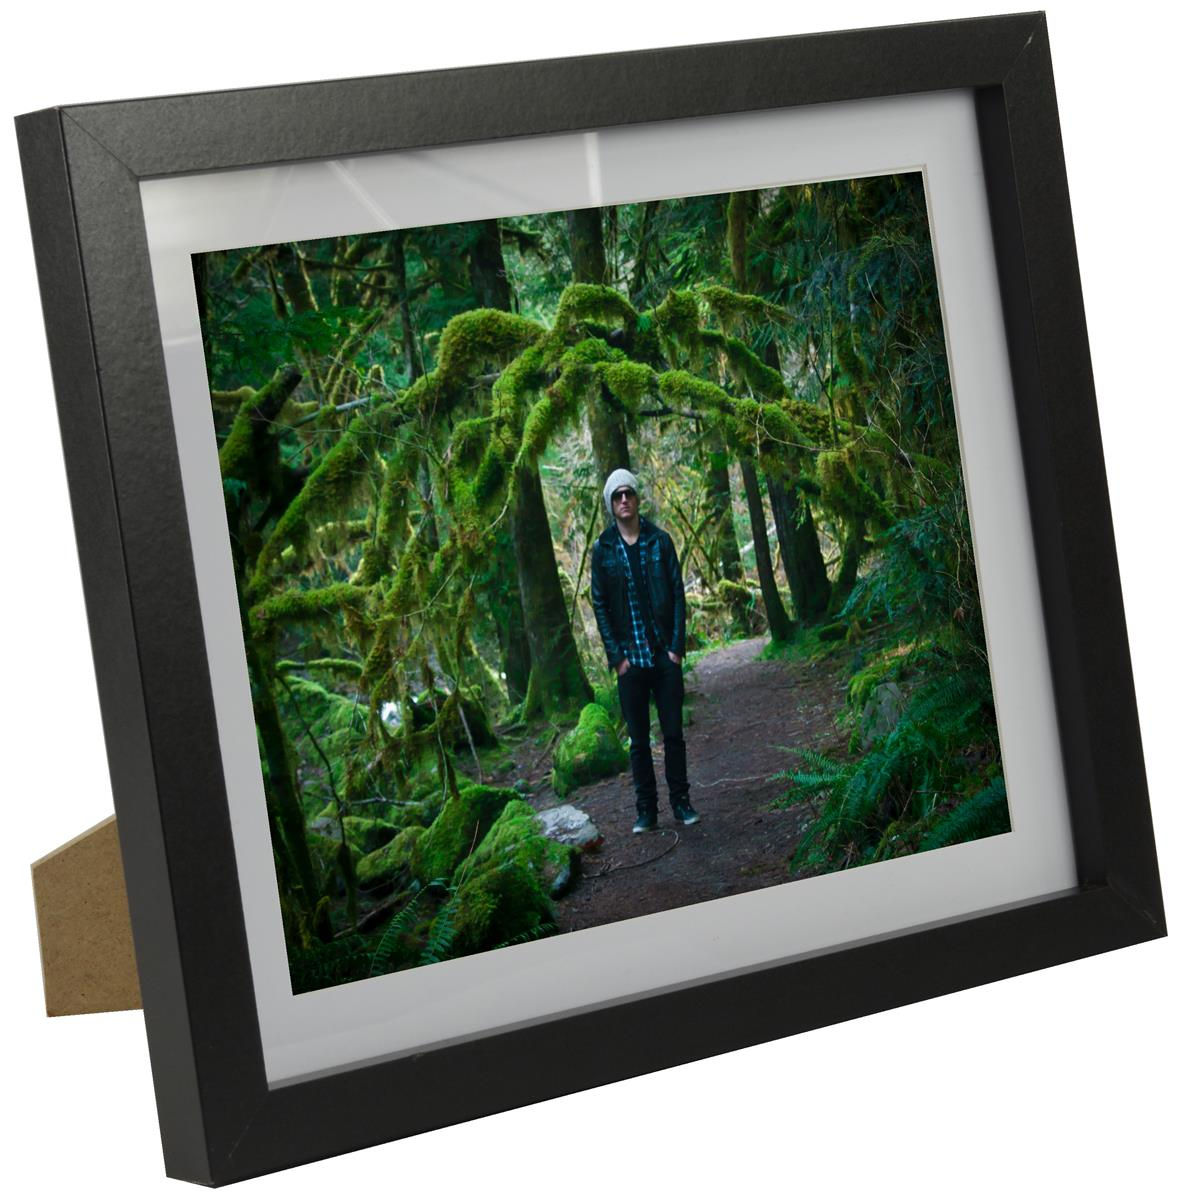 8 Quot X 10 Quot Wood Picture Frames For Tabletop Or Wall Mount